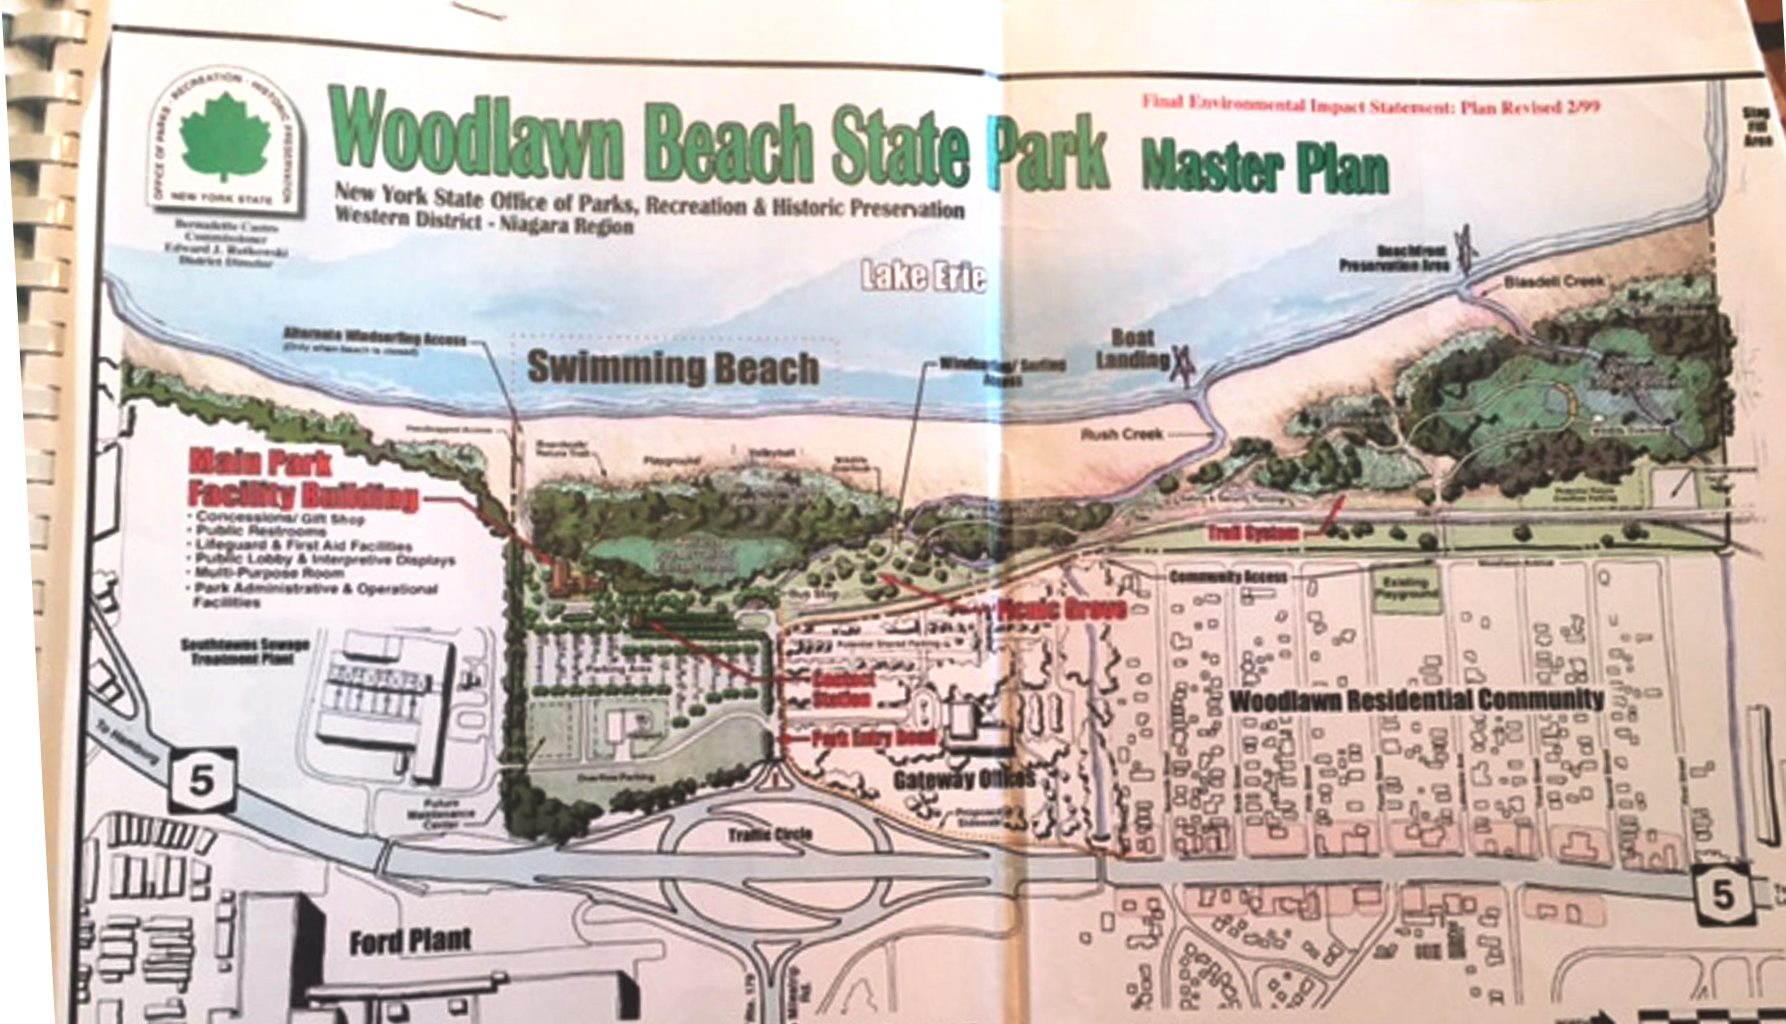 The state's 1999 master plan for Woodlawn Beach.